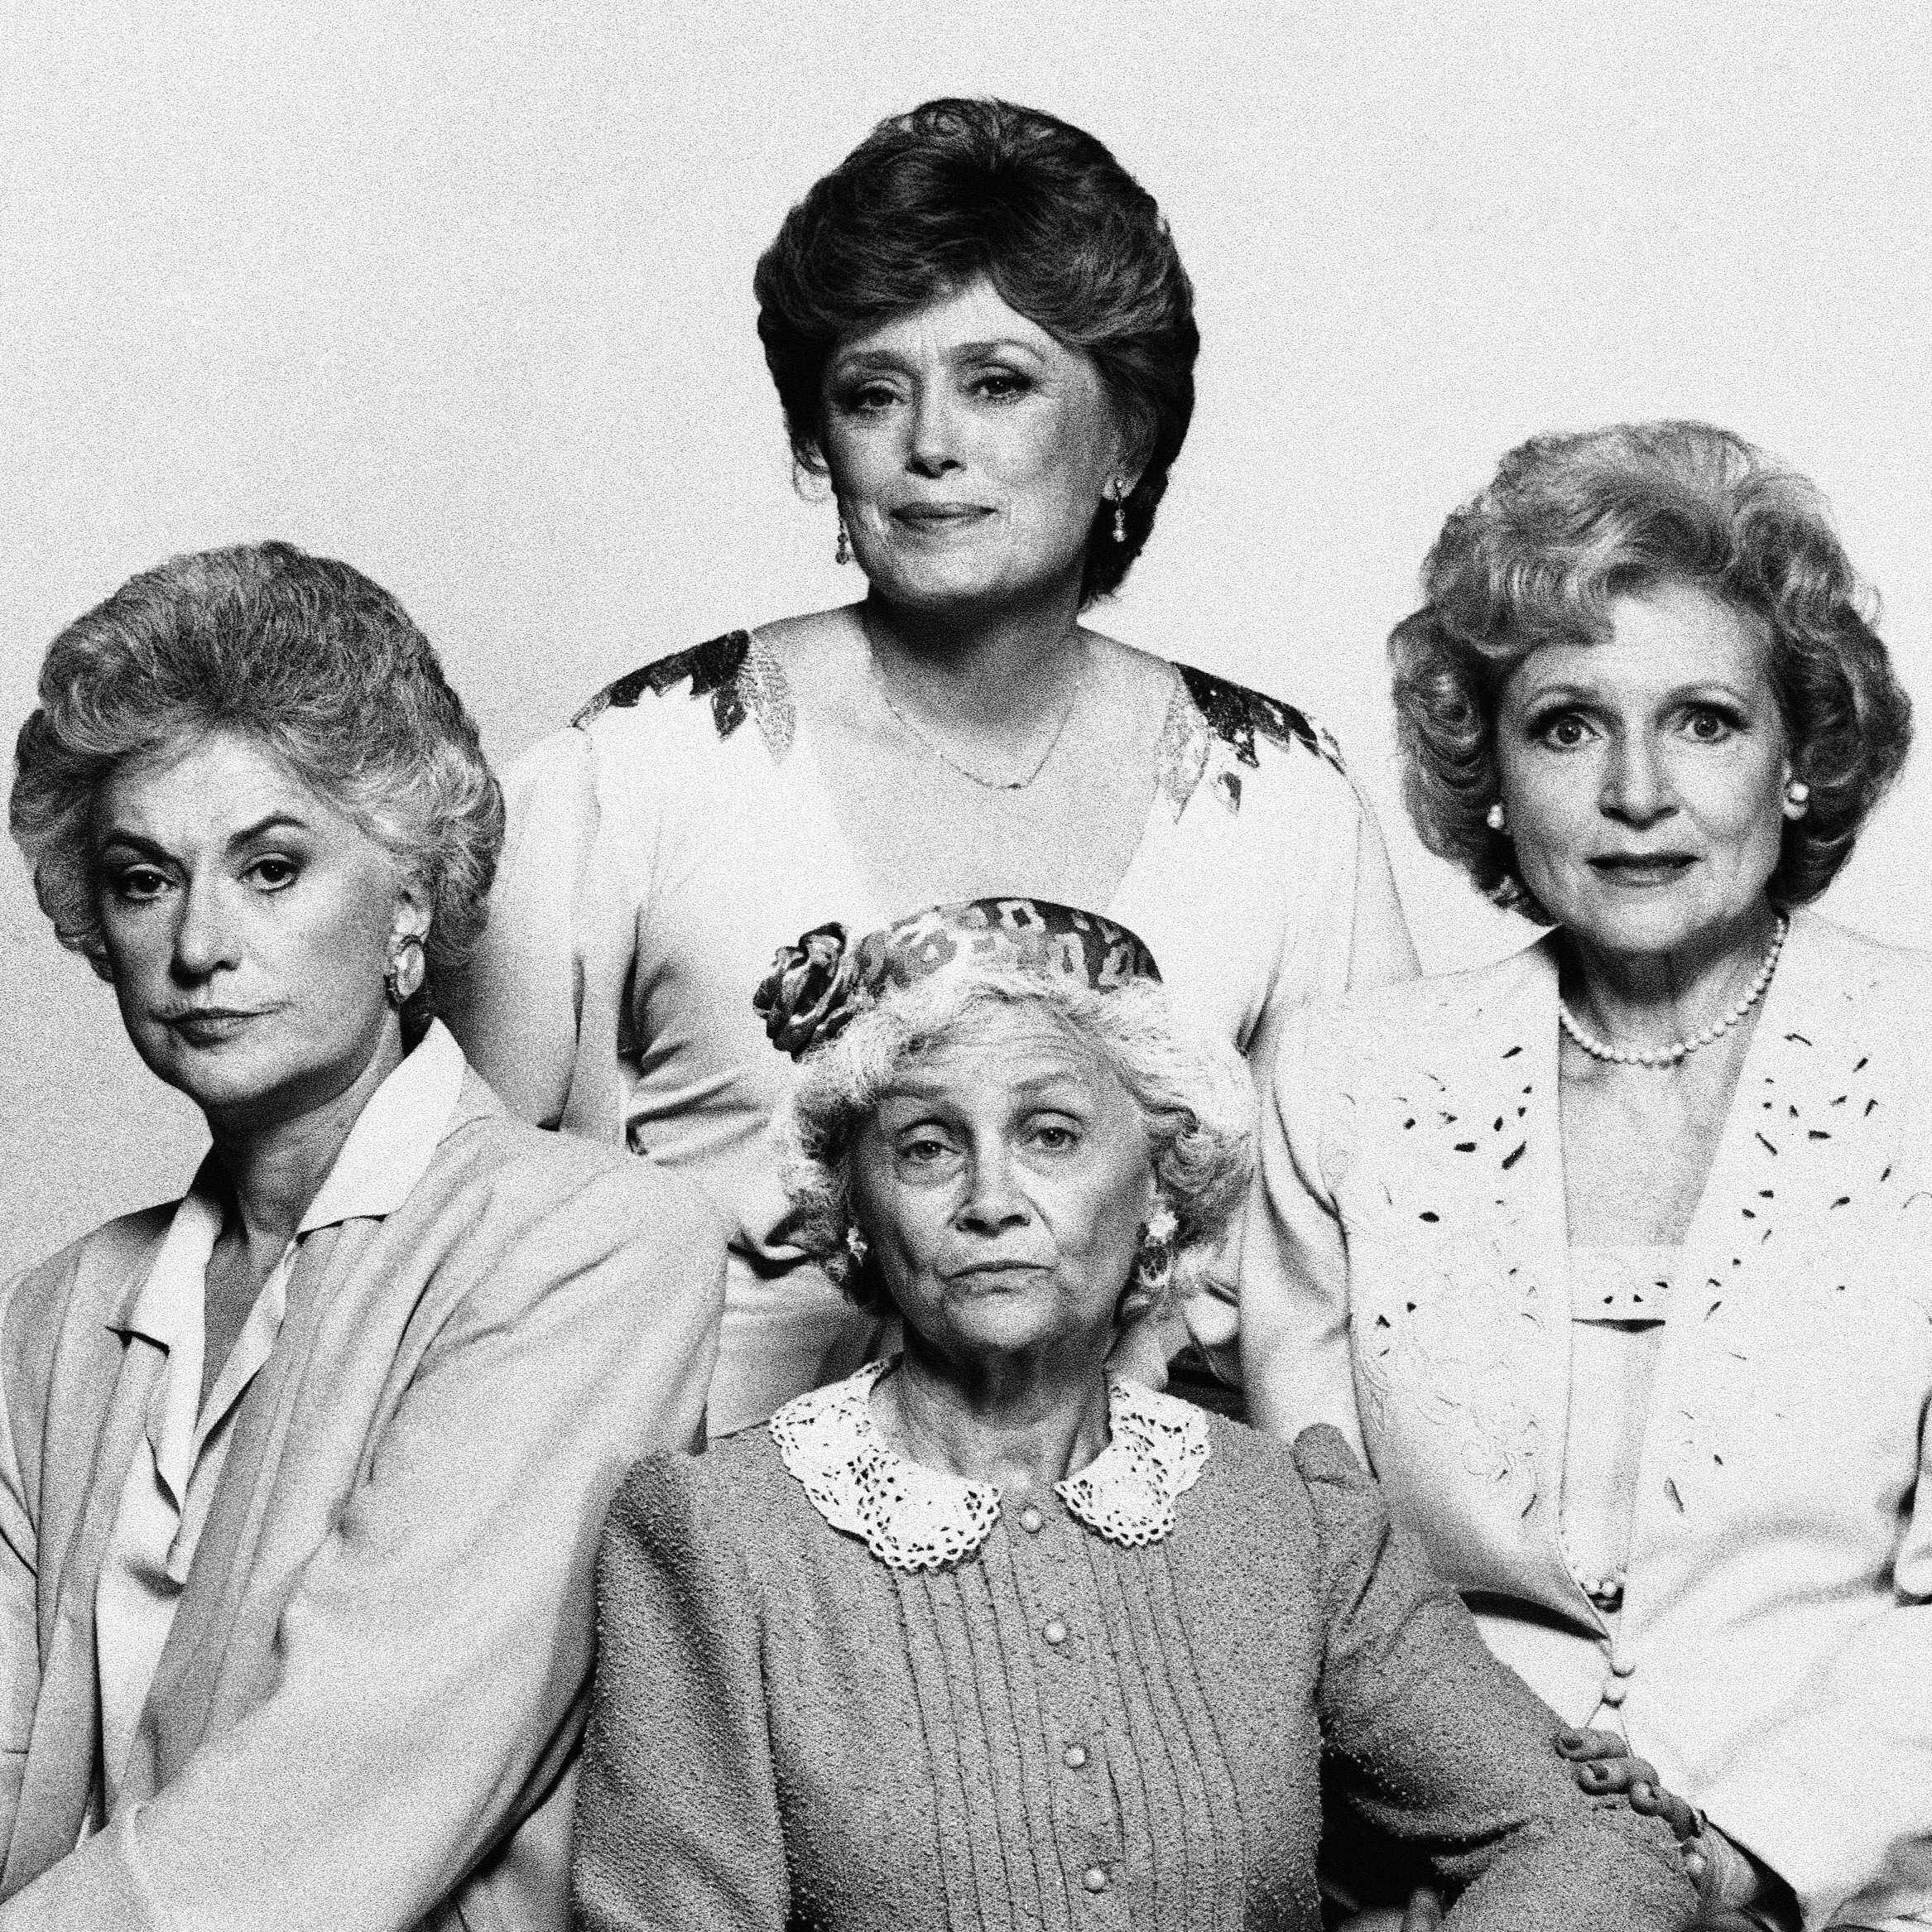 In true kick-ass Golden Girls fashion, Dorothy (Bea Arthur, clockwise from left), Blanche (Rue McClanahan), Rose (Betty White) and Sophia (Estelle Getty) showed us how utterly human we all are at any age.